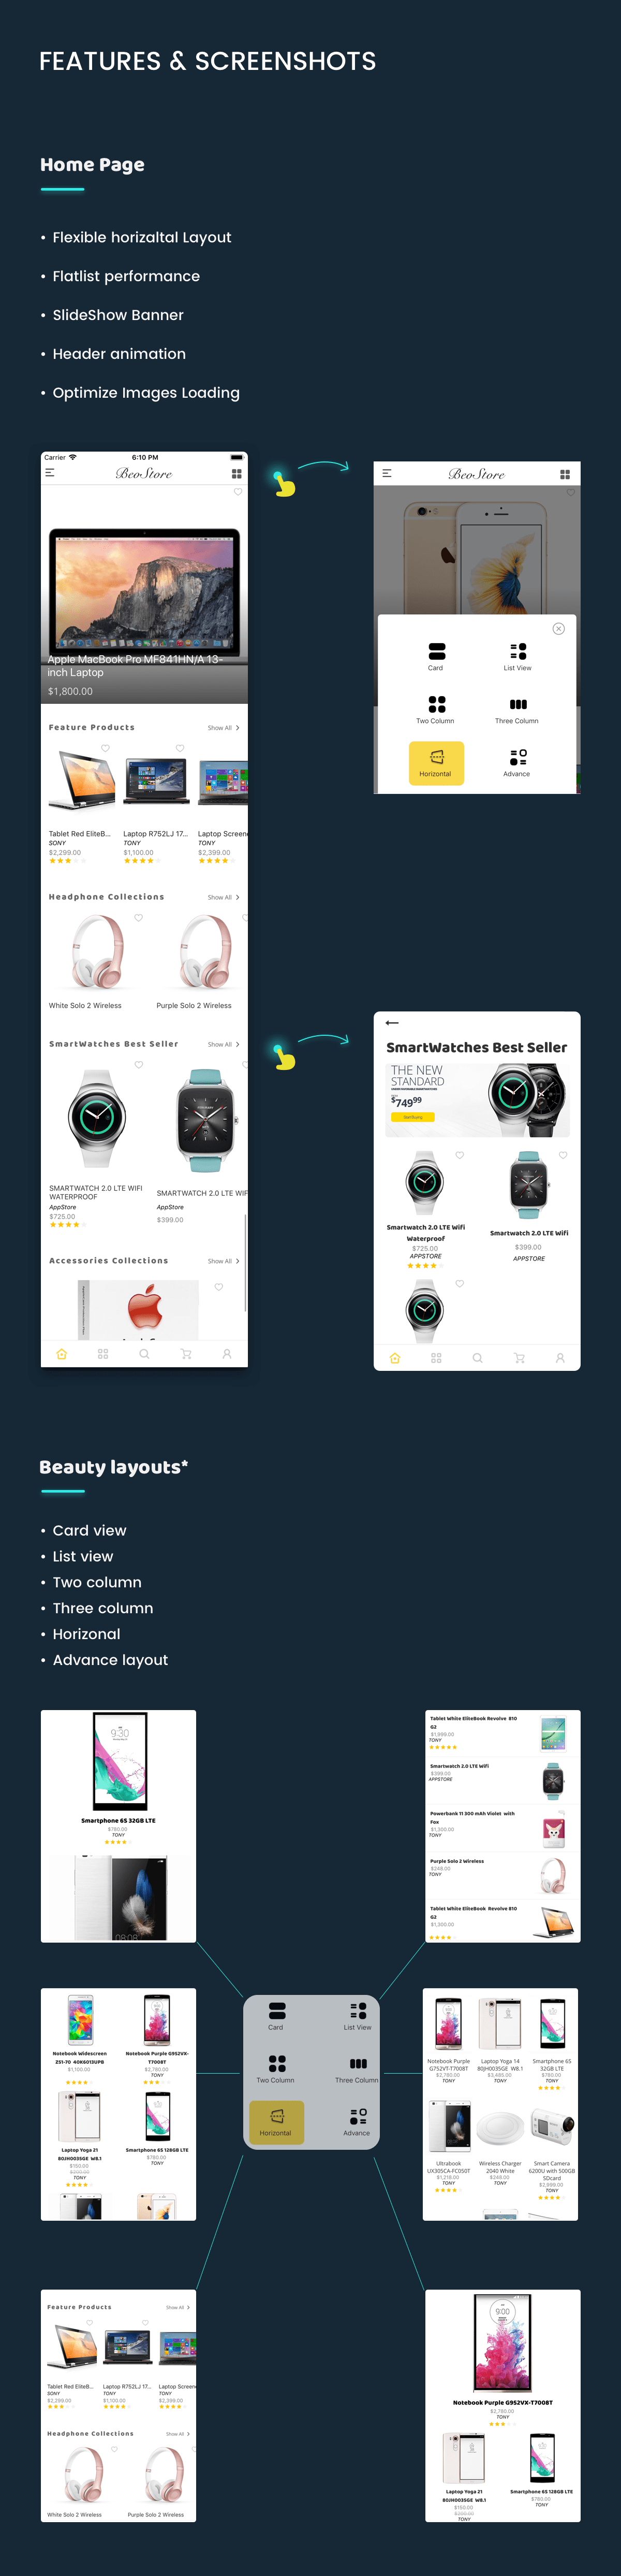 MStore Multi Vendor - Complete React Native template for WooCommerce - 18